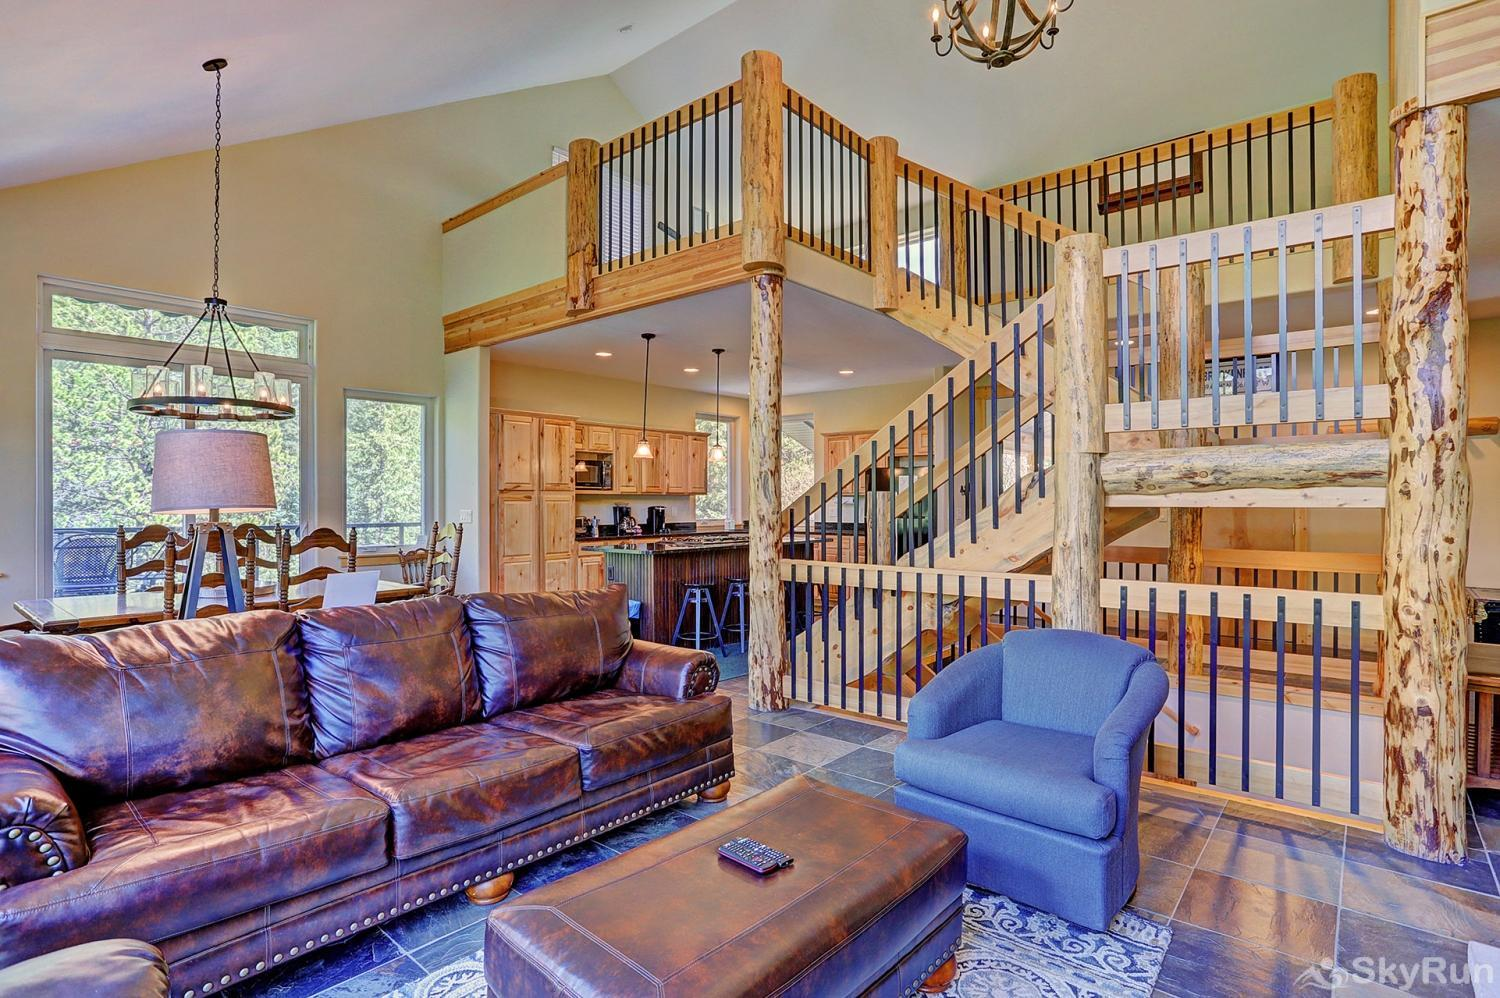 Twin Creek Lodge Beautifully designed interior with open floor plan